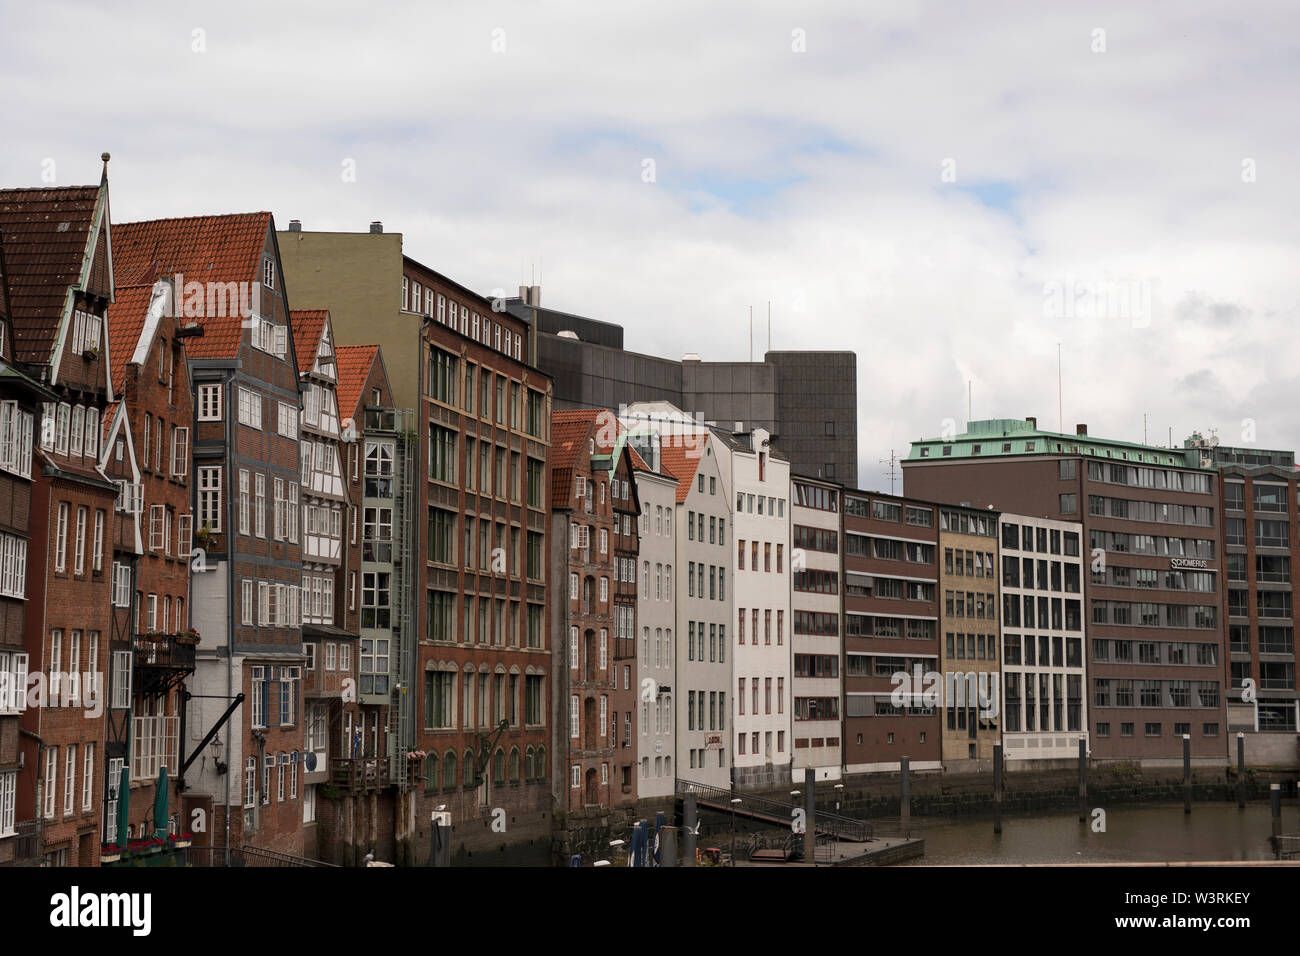 Historic buildings on Deichstrasse on the Nikolaifleet in Hamburg, Germany. Deichstrasse is the oldest remaining street in the Altstadt. Stock Photo